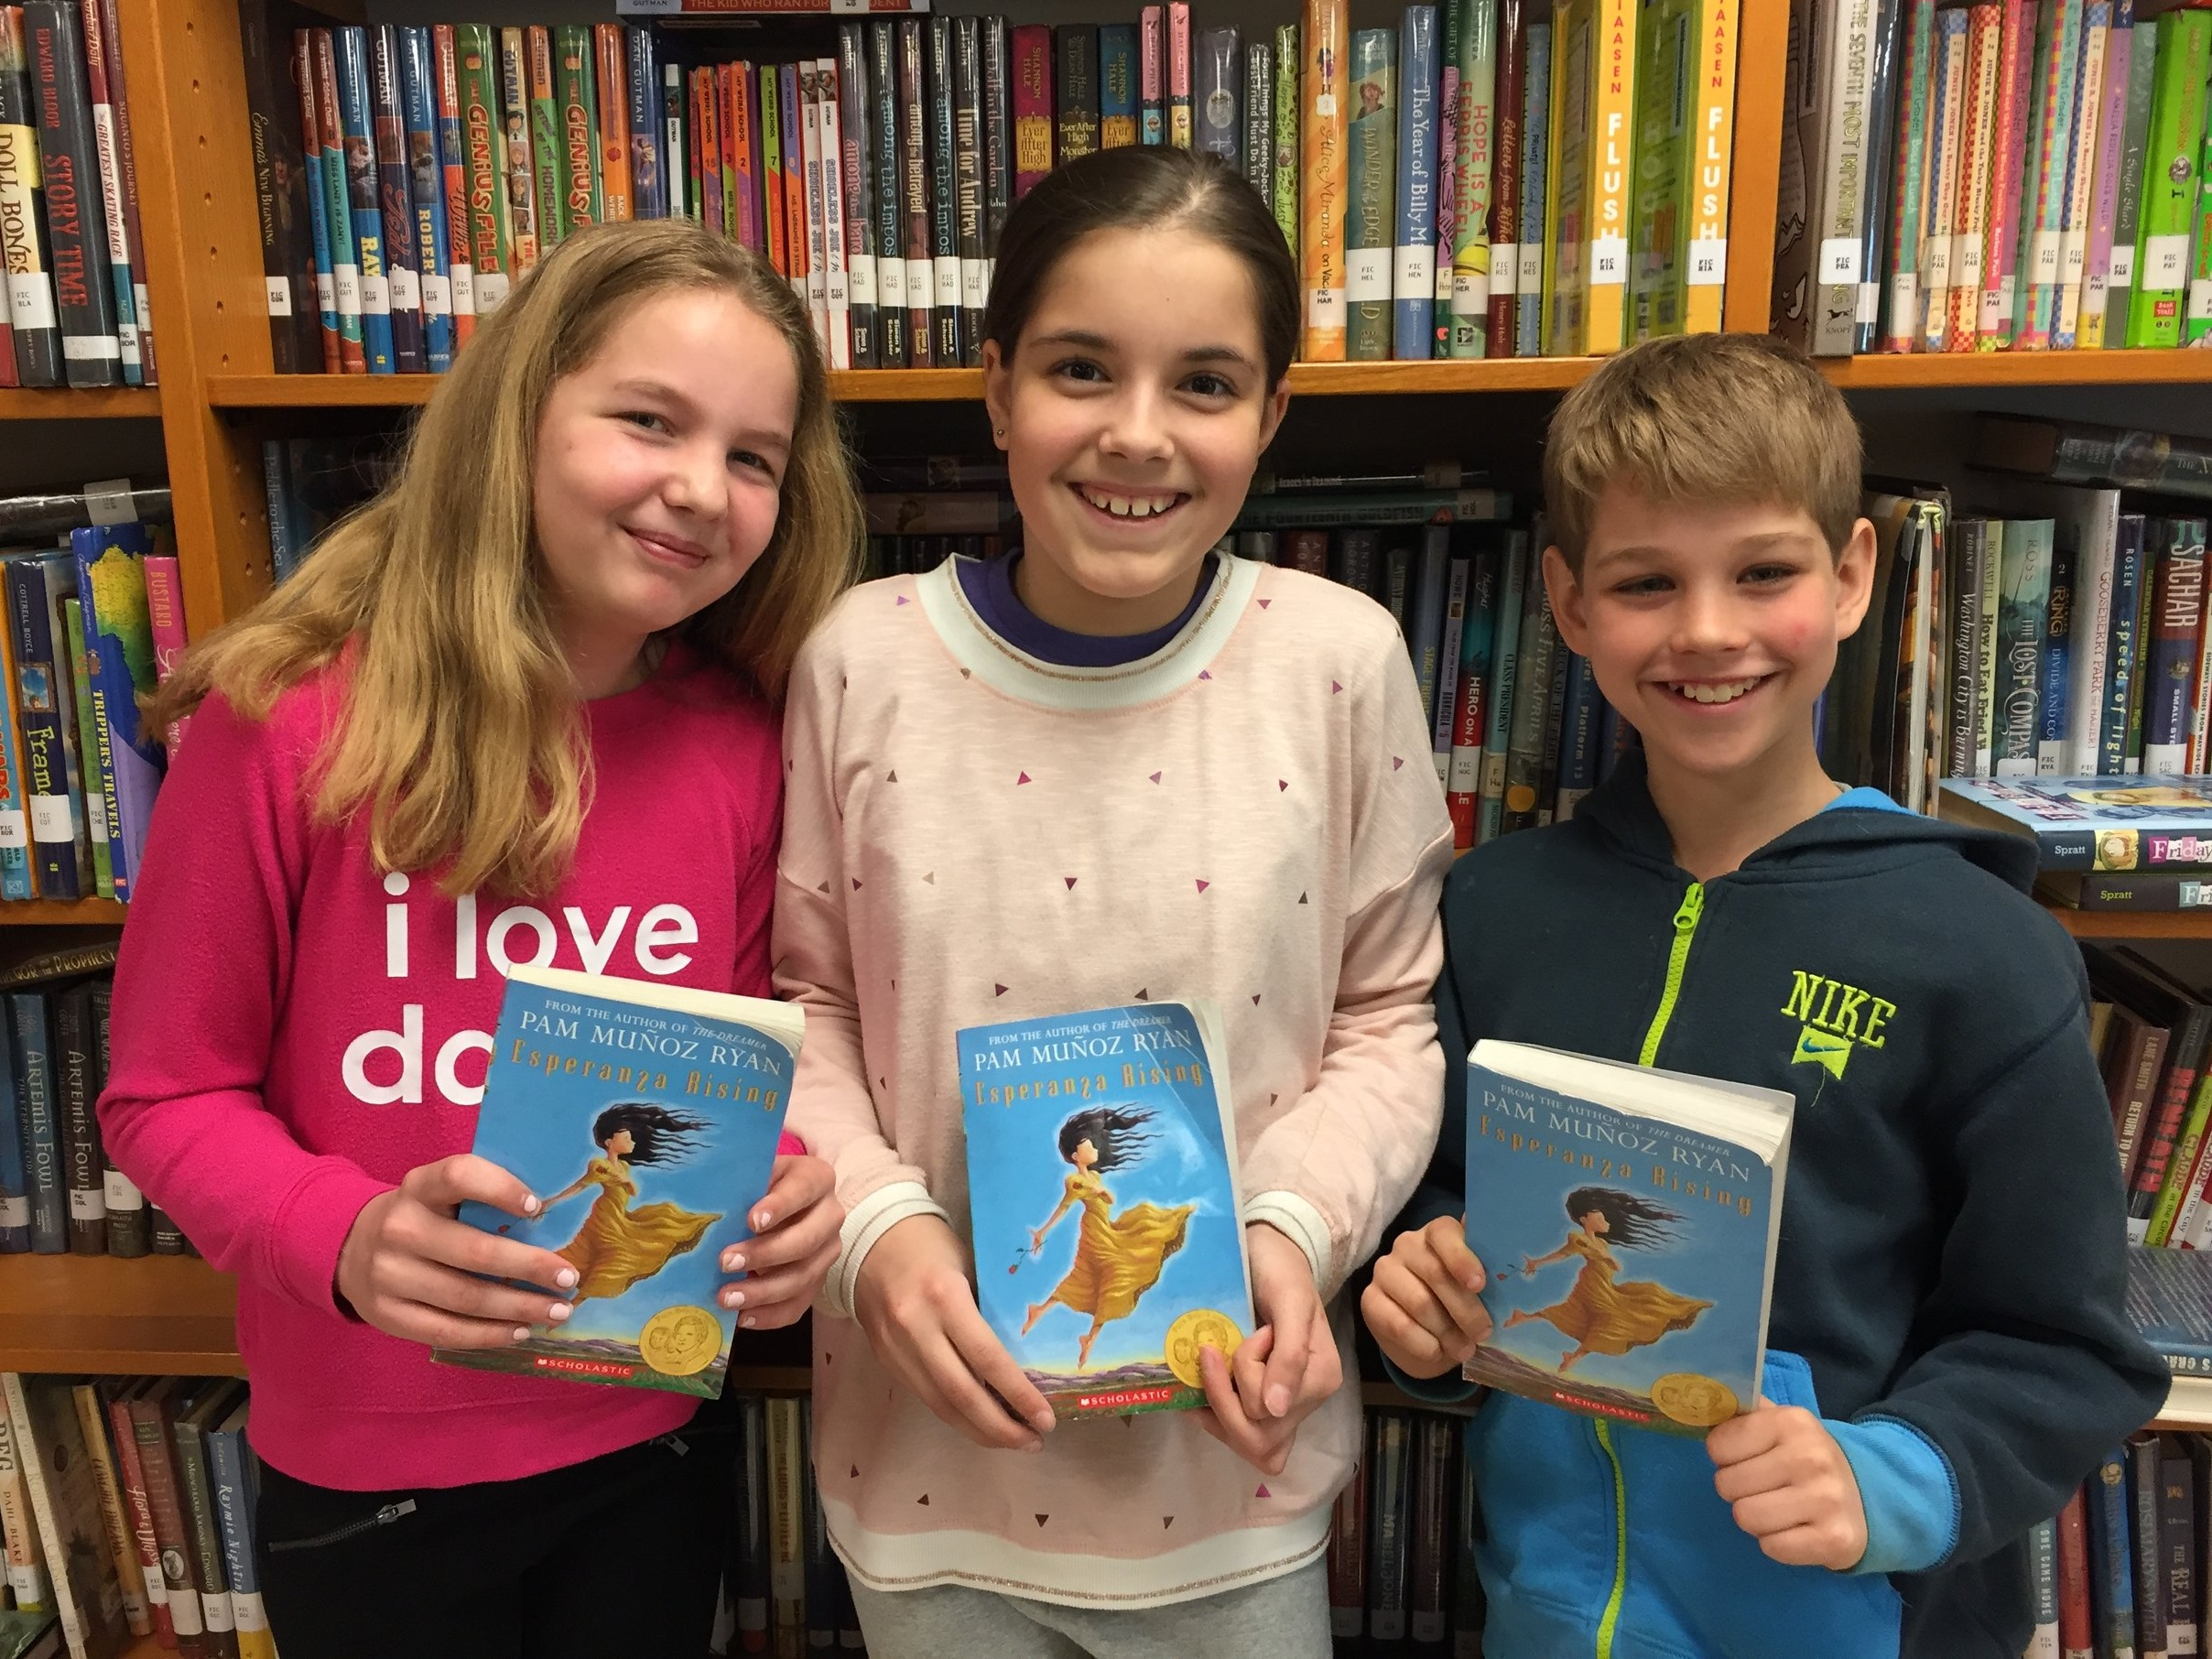 Ellie, Bea, and Tommy from Murch Elementary School in Washington, DC